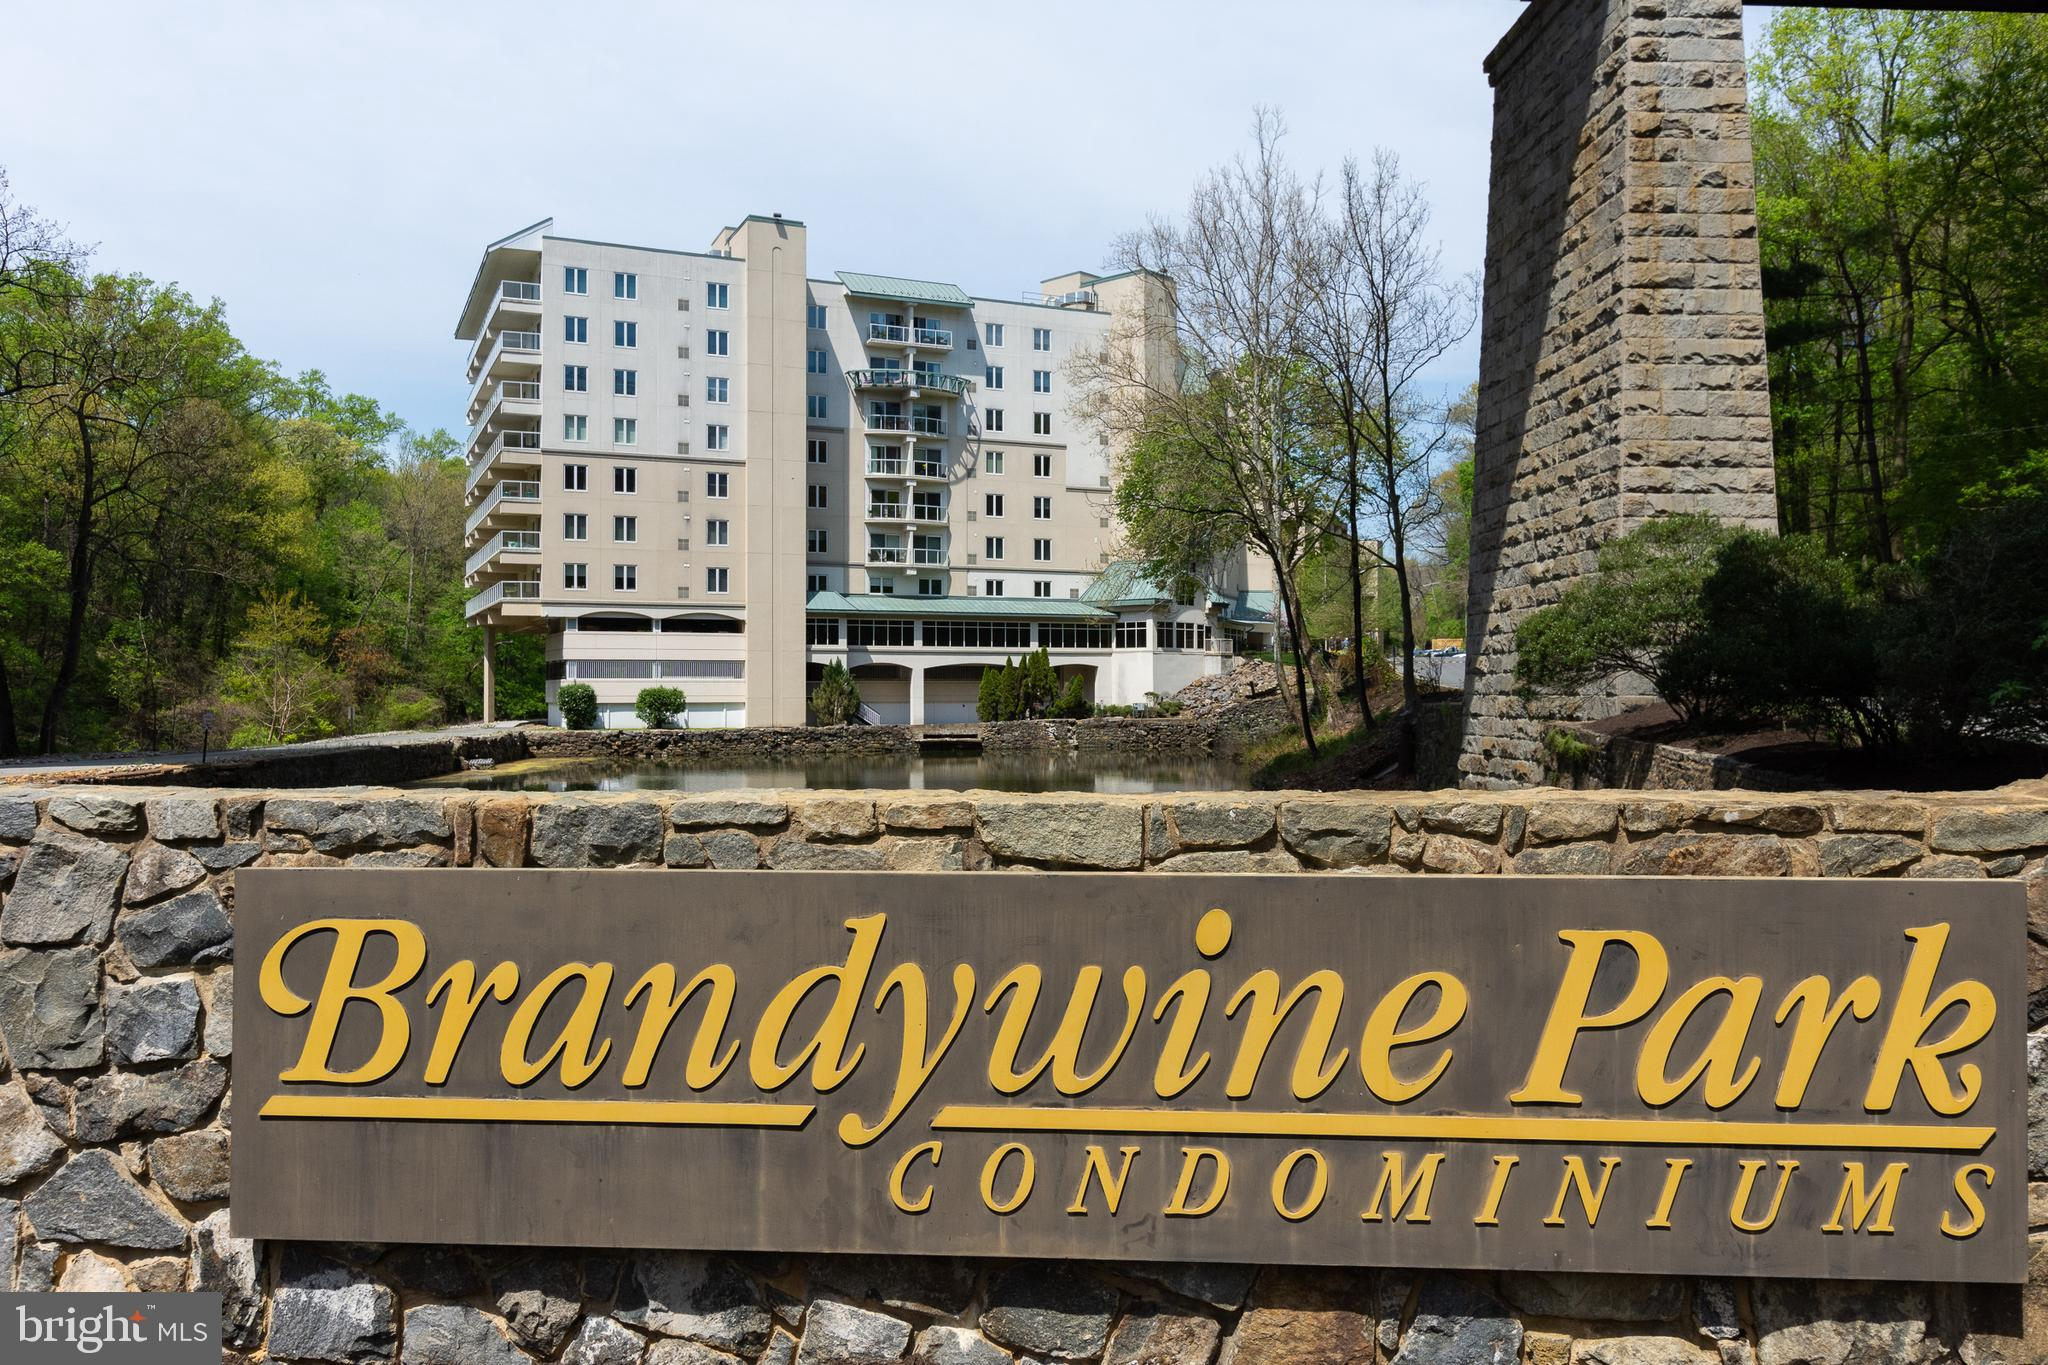 Rare opportunity in the Old Mill of Brandywine Park Condominiums. This 3rd floor 3 bedroom, 3 bath, plus a den condo has an open concept floor plan, high ceilings, and abundance of natural light entering through a dramatic, oversized skylight in the raised ceiling. Breath taking views with floor to ceiling windows on the river side, make this unit even more exceptional. Hardwood floors flow through the main living areas of the kitchen, living room, dining room, and den. The den features built-ins for home office organization. Well equipped kitchen with abundant white cabinets and granite counters. Spacious master suite with walk-in closet, full bathroom, and window seats affording beautiful views. There are two additional bedrooms and baths. One of the guest baths is adjacent to the primary suite and has a pocket door to the primary suite creating an extension of the primary bath for when you aren't hosting company and prefer to allow each owner to have their own bath. Laundry is cleverly tucked away in the hall, but allows ample room to work. Enjoy river and park views from the private balcony. Brandywine Park is a gated community with 24 hour concierge and security.  Two designated parking spots, one in the covered garage,  and ample guest parking. Community amenities include fitness center, community room, in-ground pool, and patio space with grilling area. Situated on the banks of the Brandywine River, Brandywine Park condominiums affords gorgeous views of the river and Brandywine Park throughout all seasons. Enjoy a walk or jog through the park to witness the blooming of the roses in the rose garden, stroll through the zoo, or watch the water dance in the newly renovated fountain. Don't miss your opportunity to live in a one of a kind penthouse located just outside Wilmington city limits with all the convenience of city living, but not the city taxes.